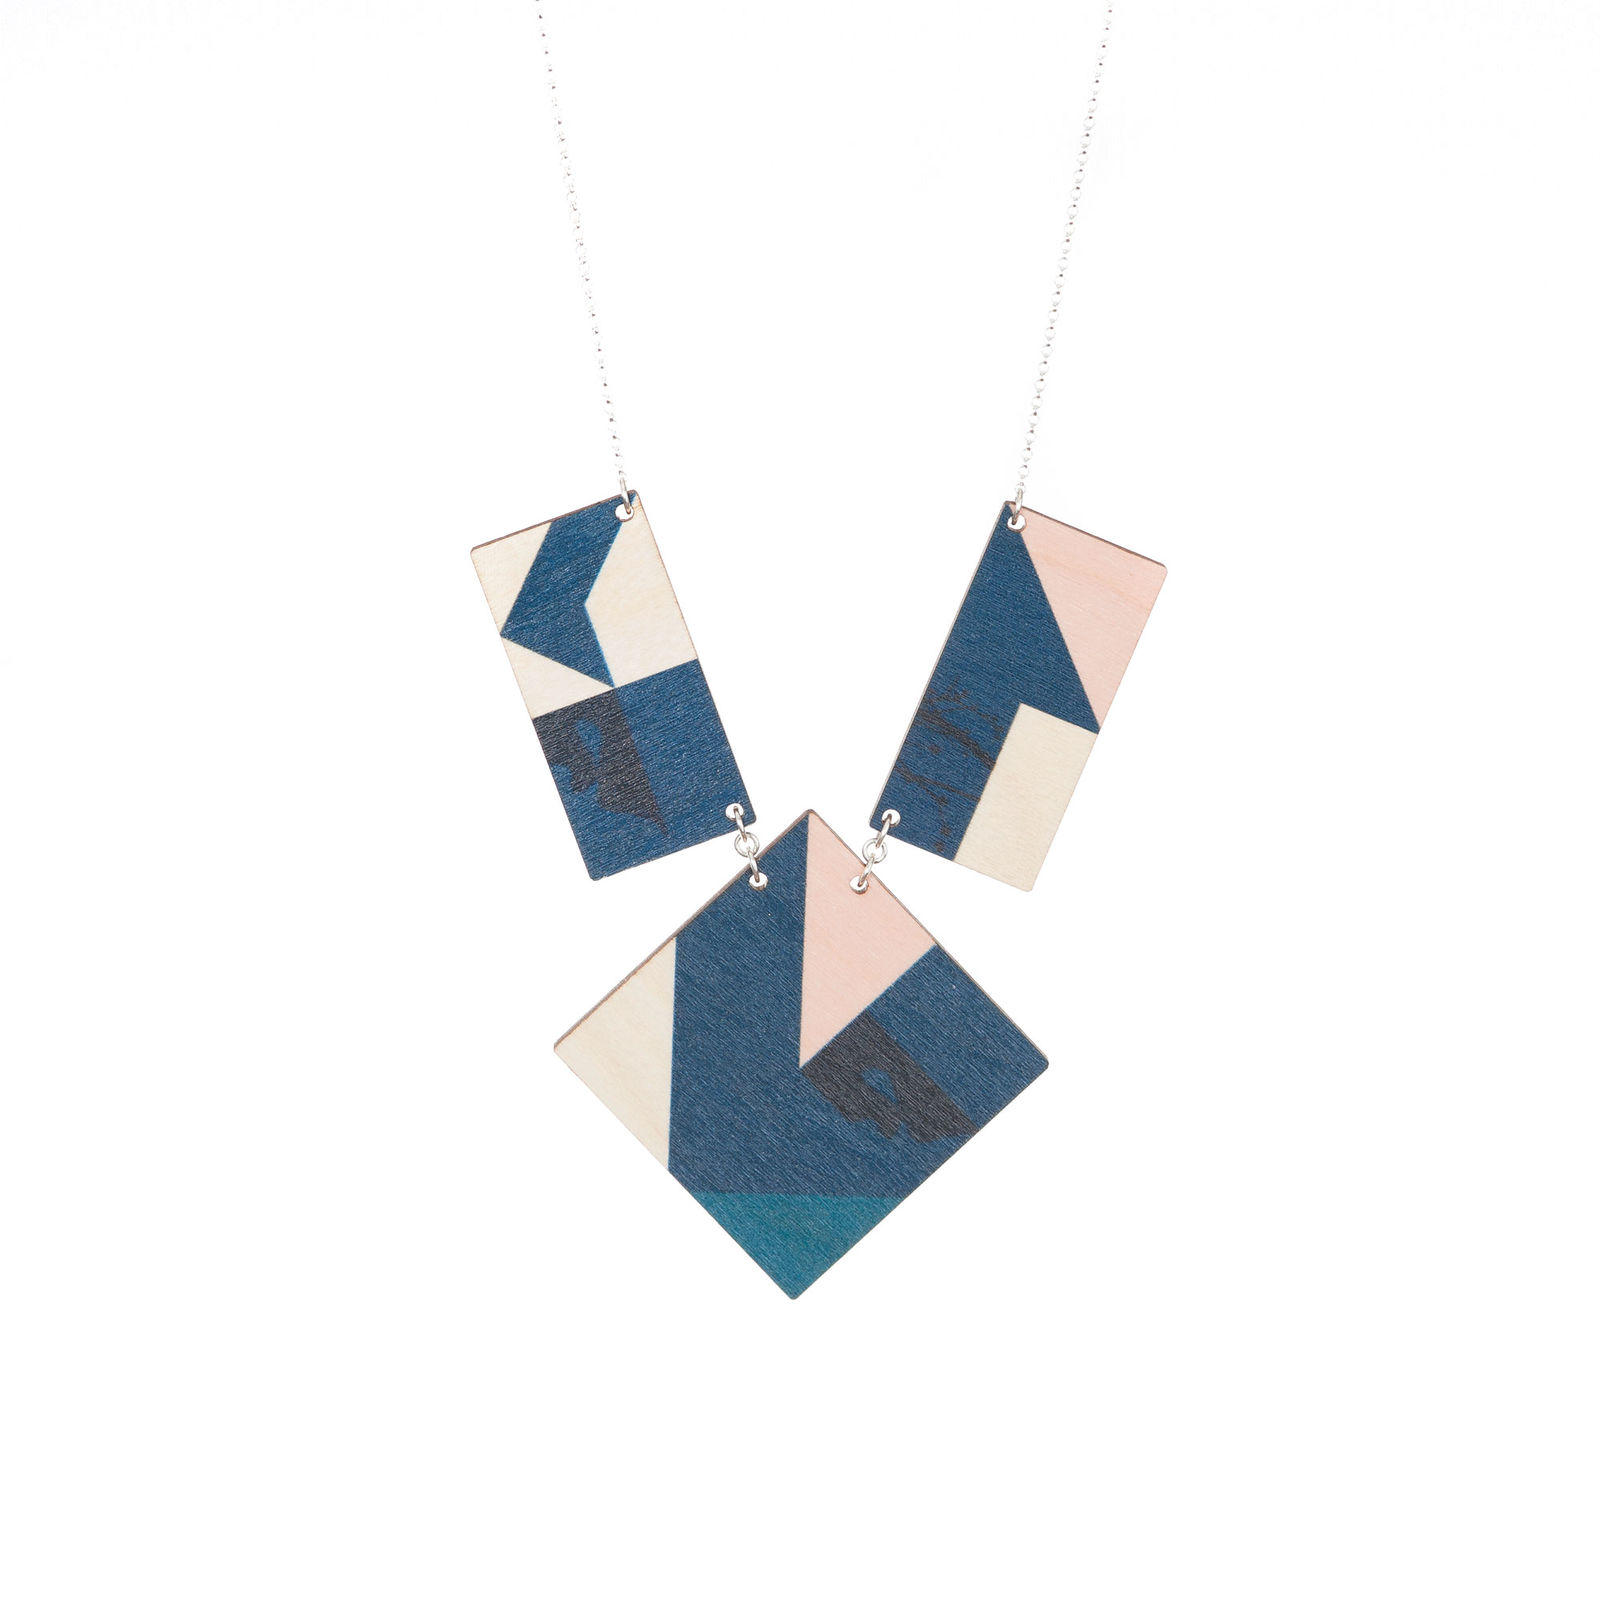 Virta / Rosa petrol blue long necklace 3 parts | Weecos